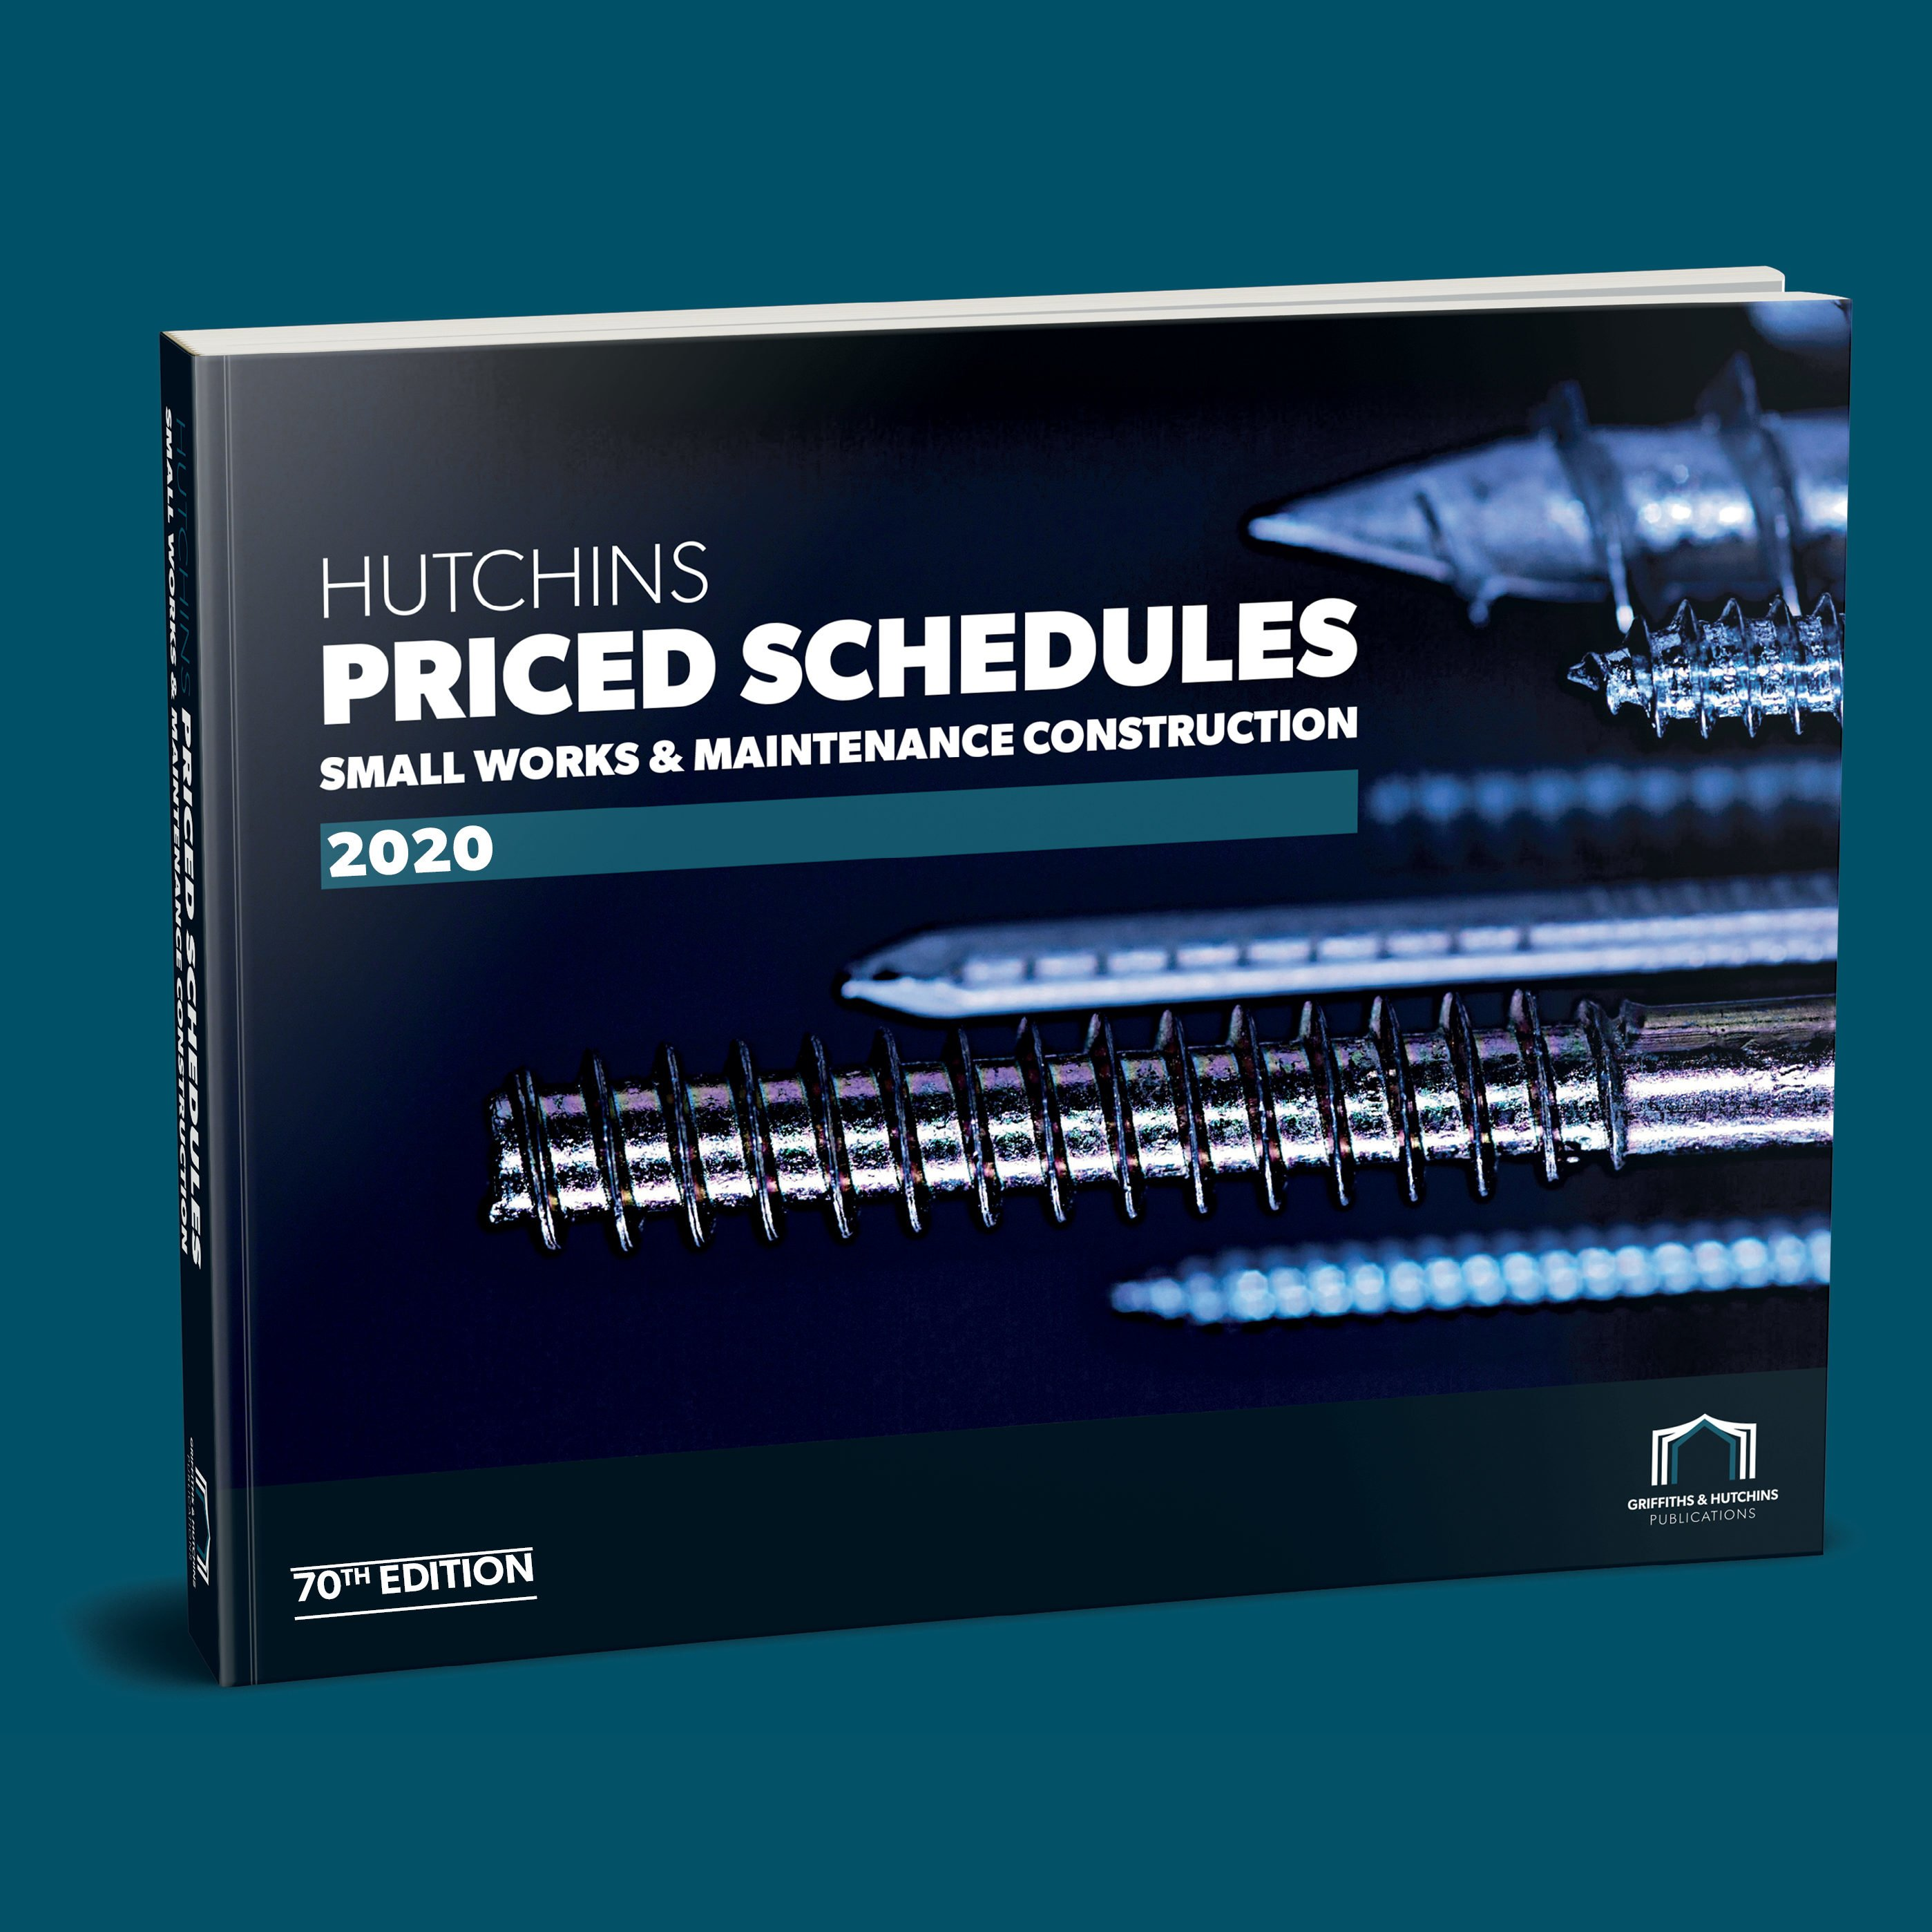 Picture showing the Hutchins Priced Schedules cover